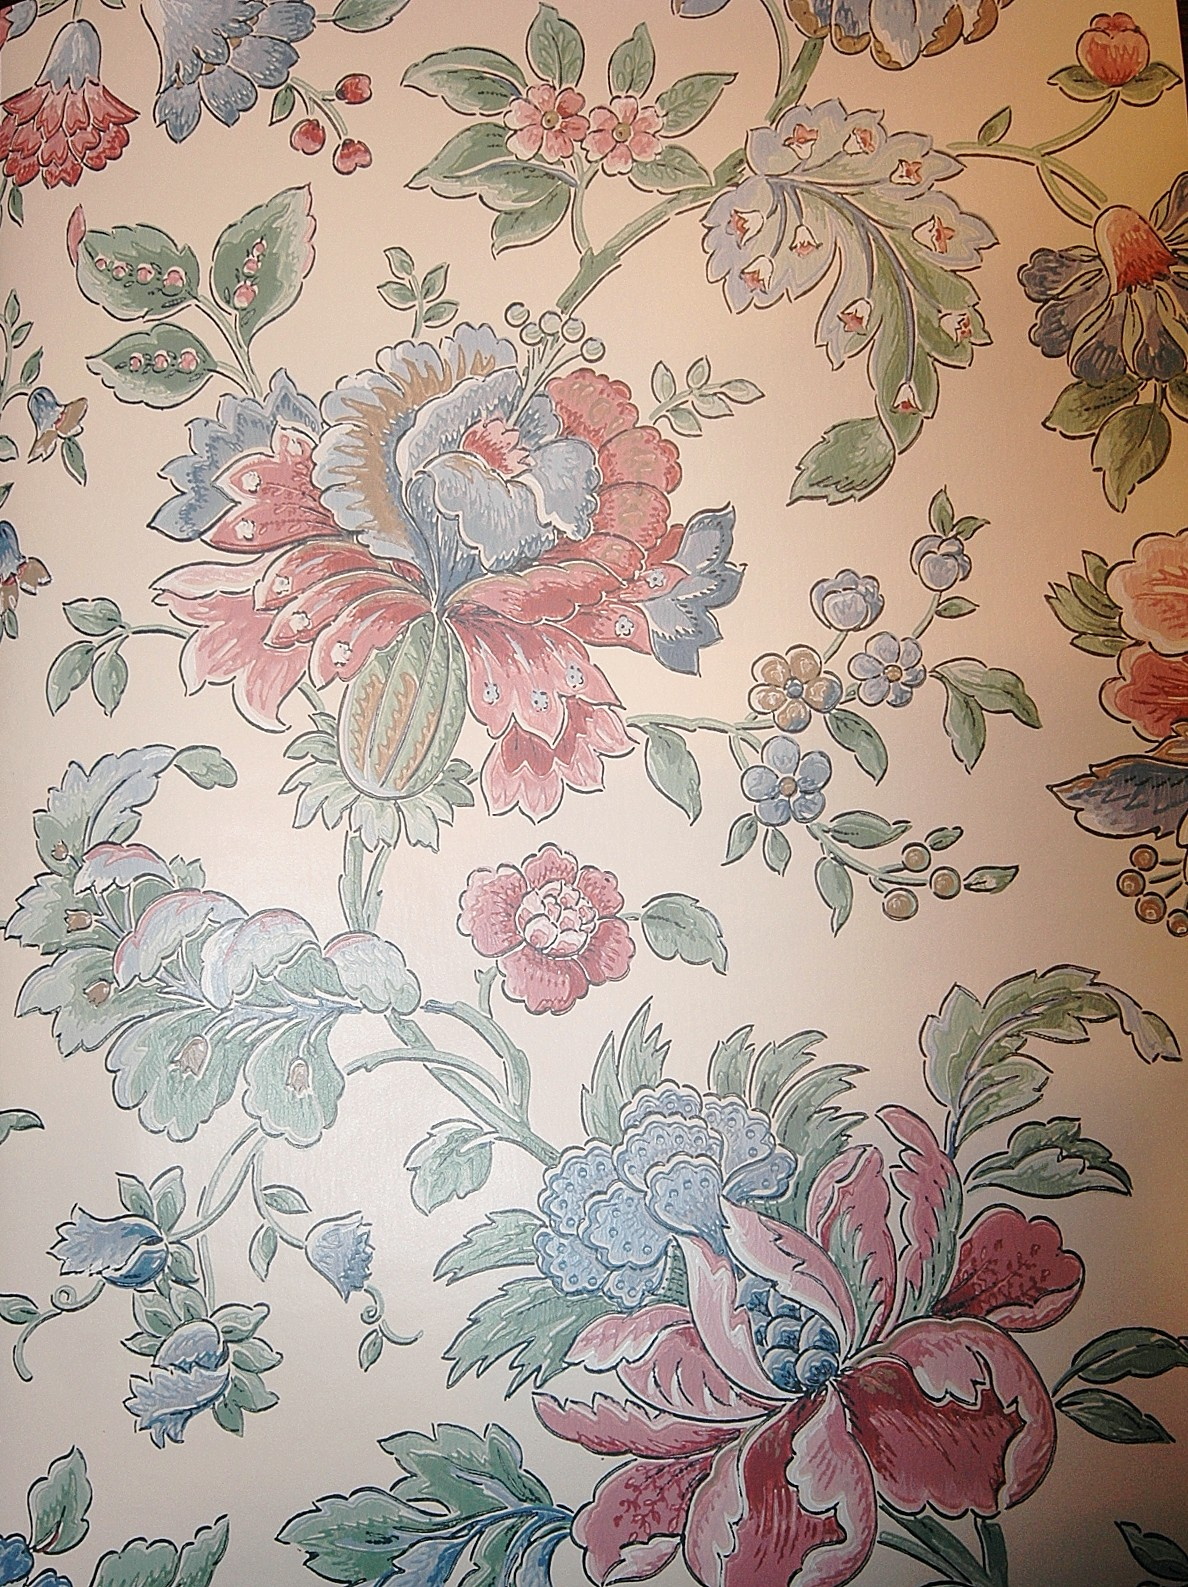 Free Download Victorian Floral Wallpaper Wallpaper For Sale